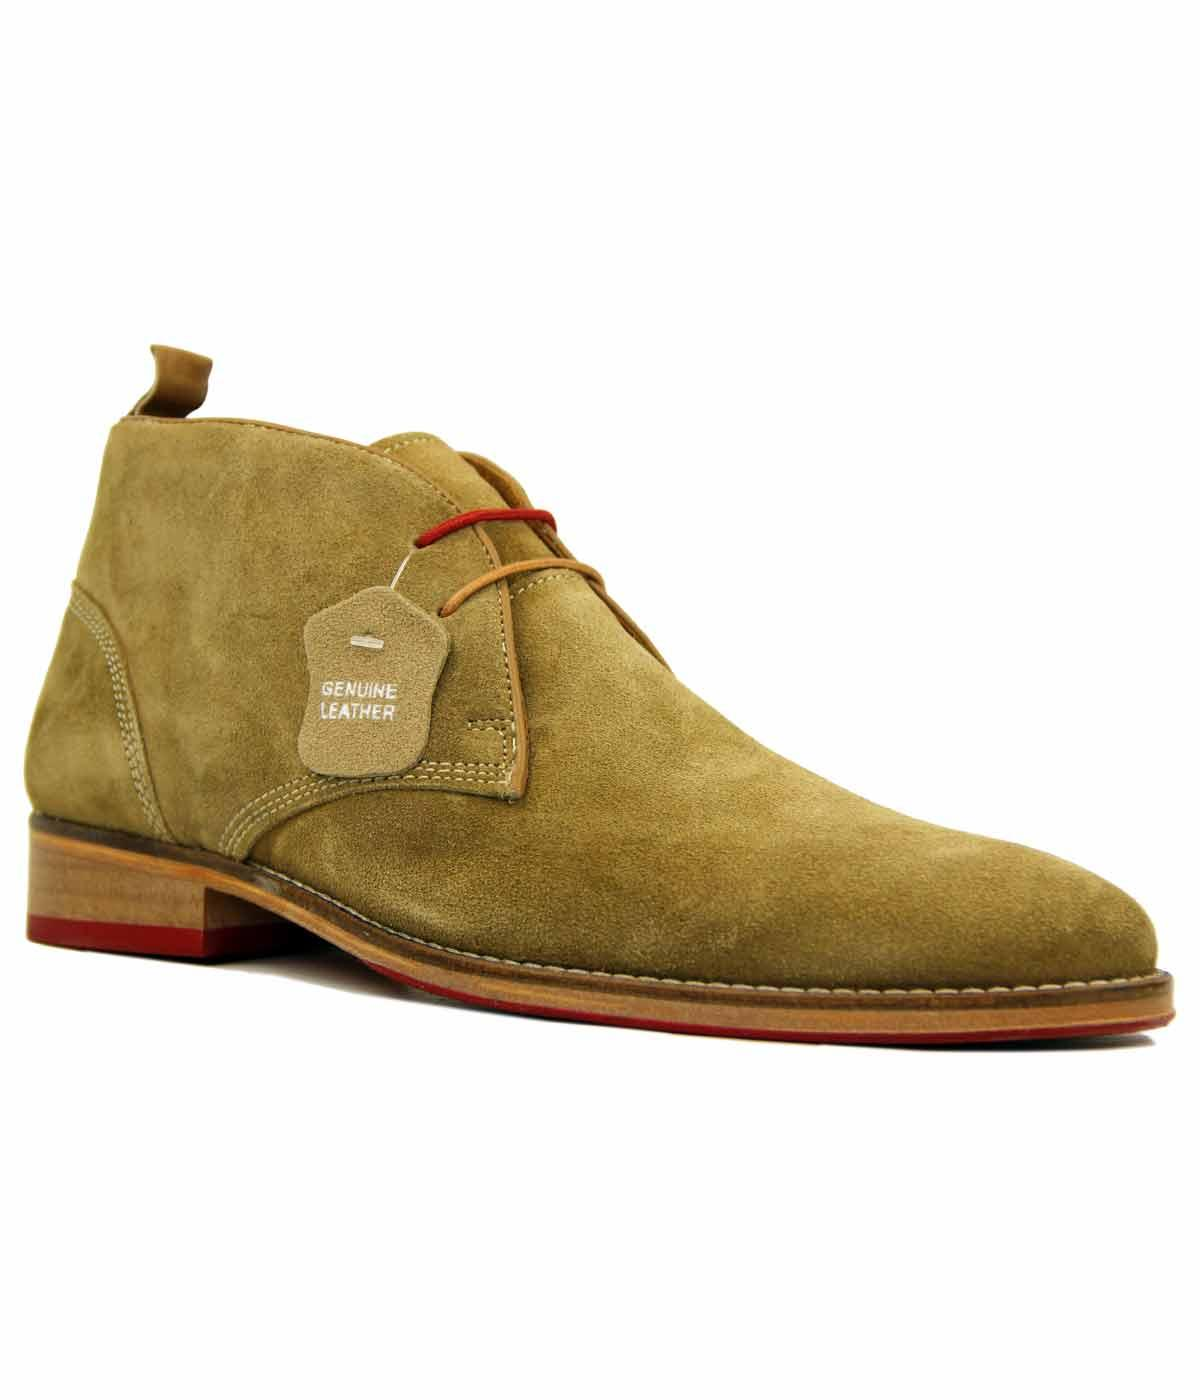 Kingston Suede PAOLO VANDINI Mod Desert Boots (T)